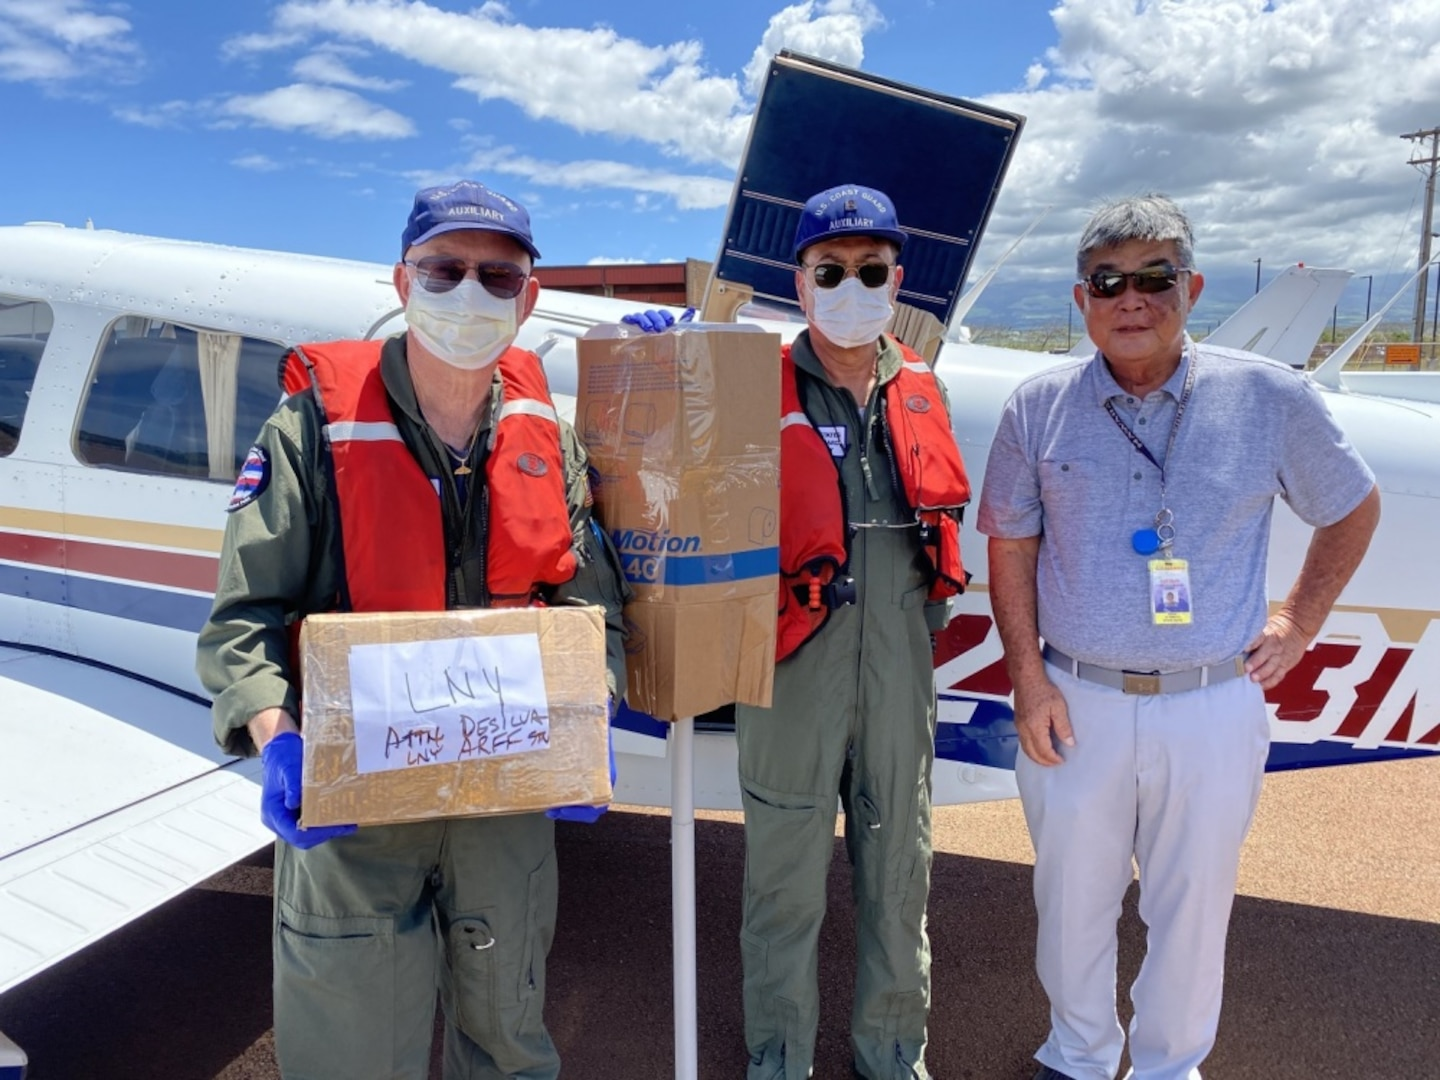 A Coast Guard Auxiliary aircrew (left) stands with Brian Kamimoto (right), assistant airport superintendent Maui District at the Maui Airport Fire Station while picking up response supplies for delivery from Maui to Lanai, March 28, 2020. The pilots transported COVID-19 supplies, including temperature reading thermometers and hand sanitation equipment, from the Maui Airport Fire Station to personnel at Lanai Airport for use by airport staff. (U.S. Coast Guard photo by Berry Redmayne/Released)